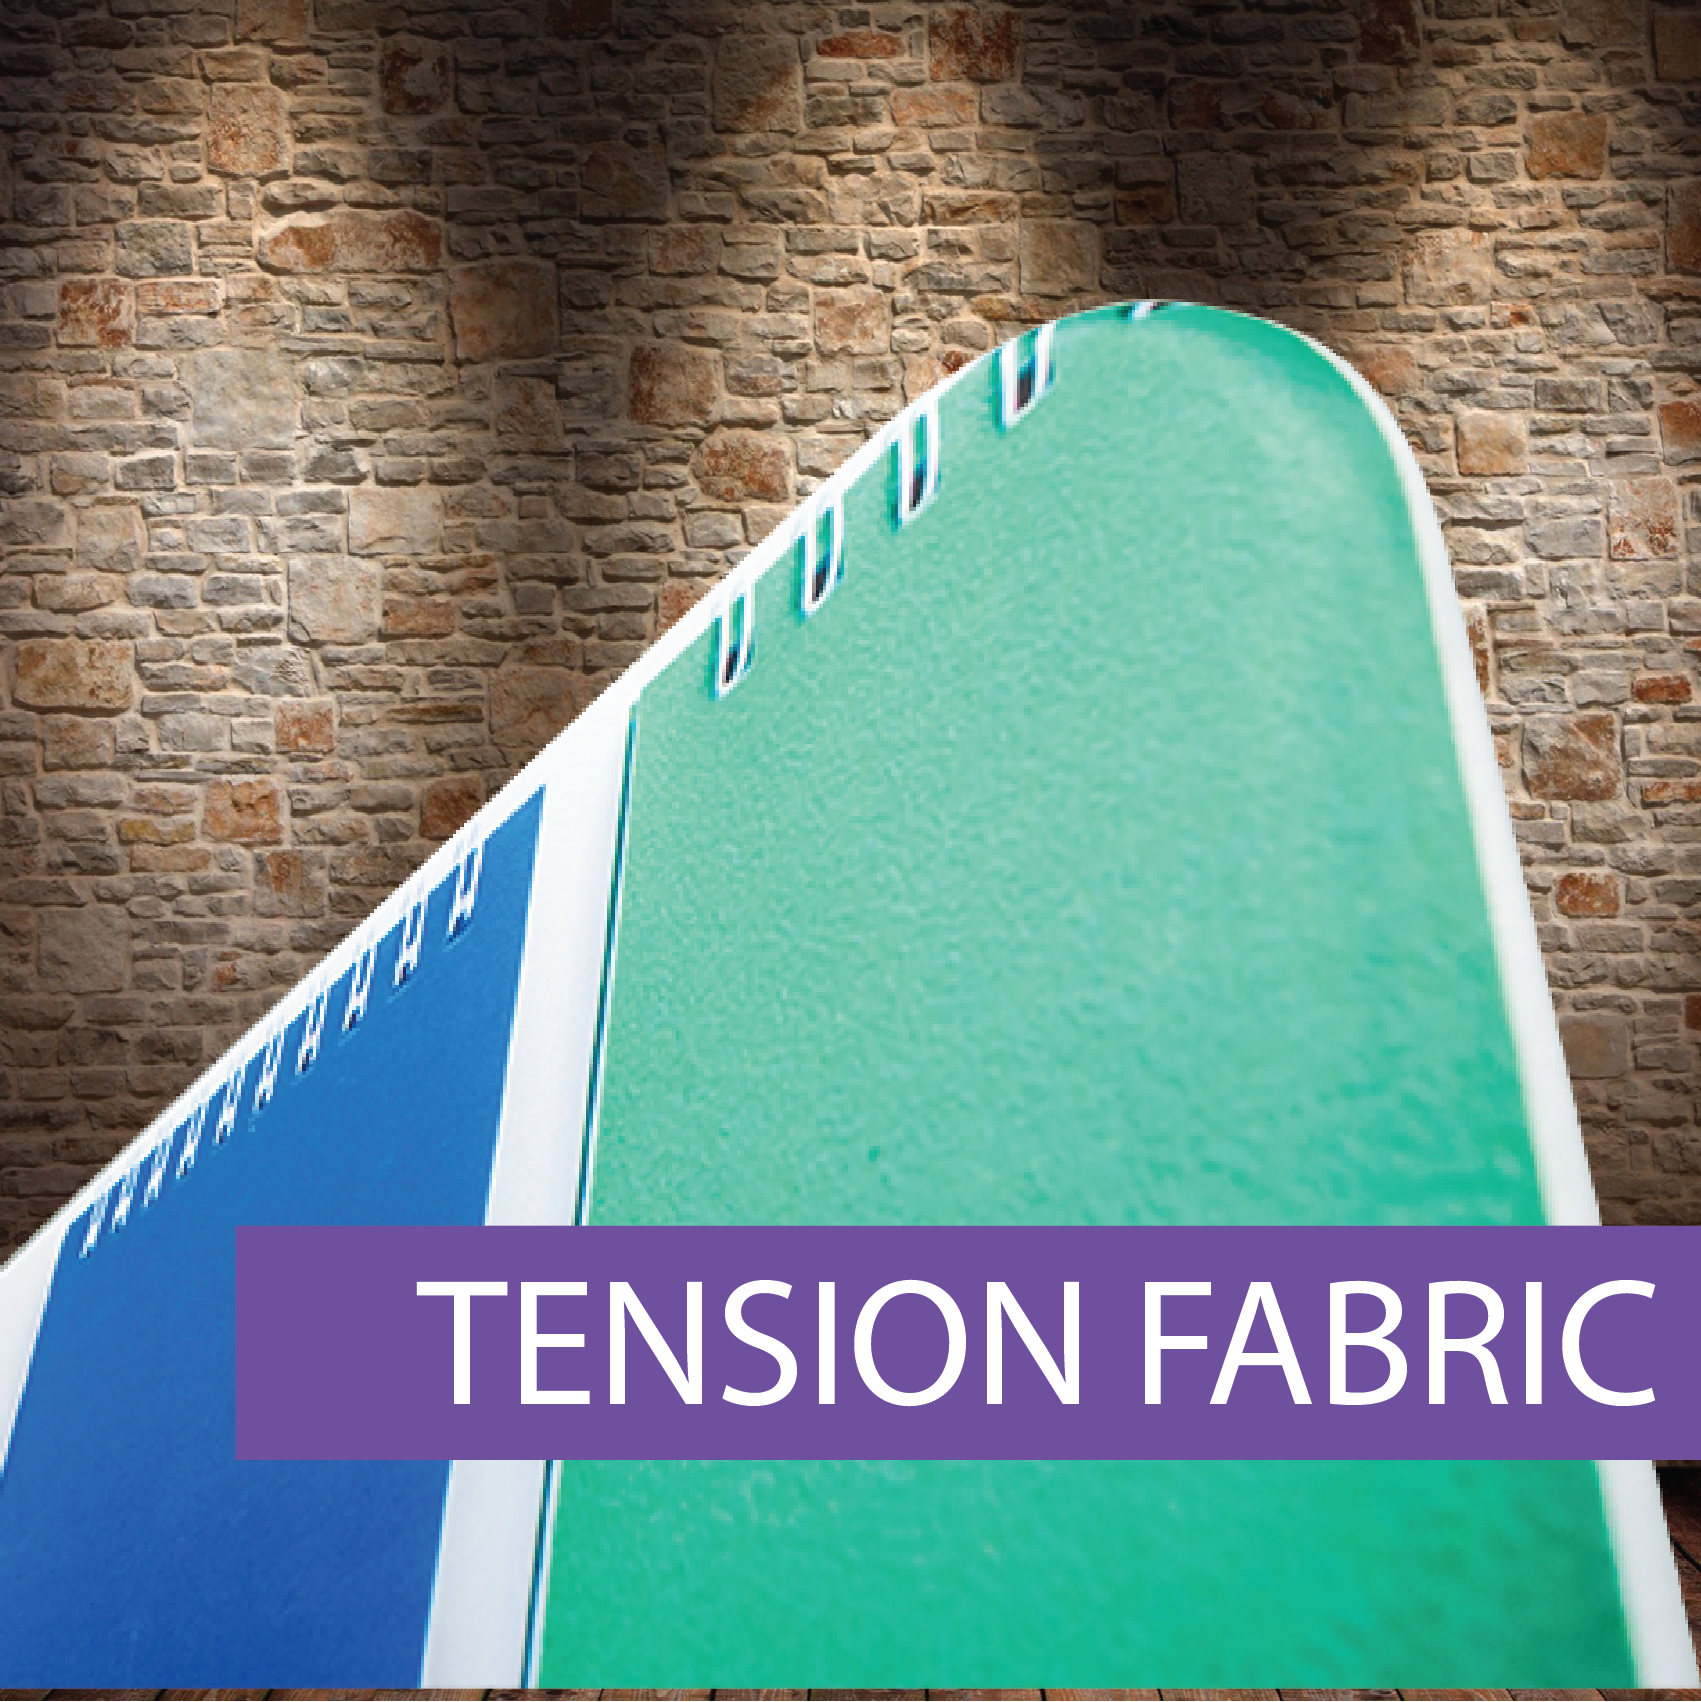 Media Wall Tension Fabric